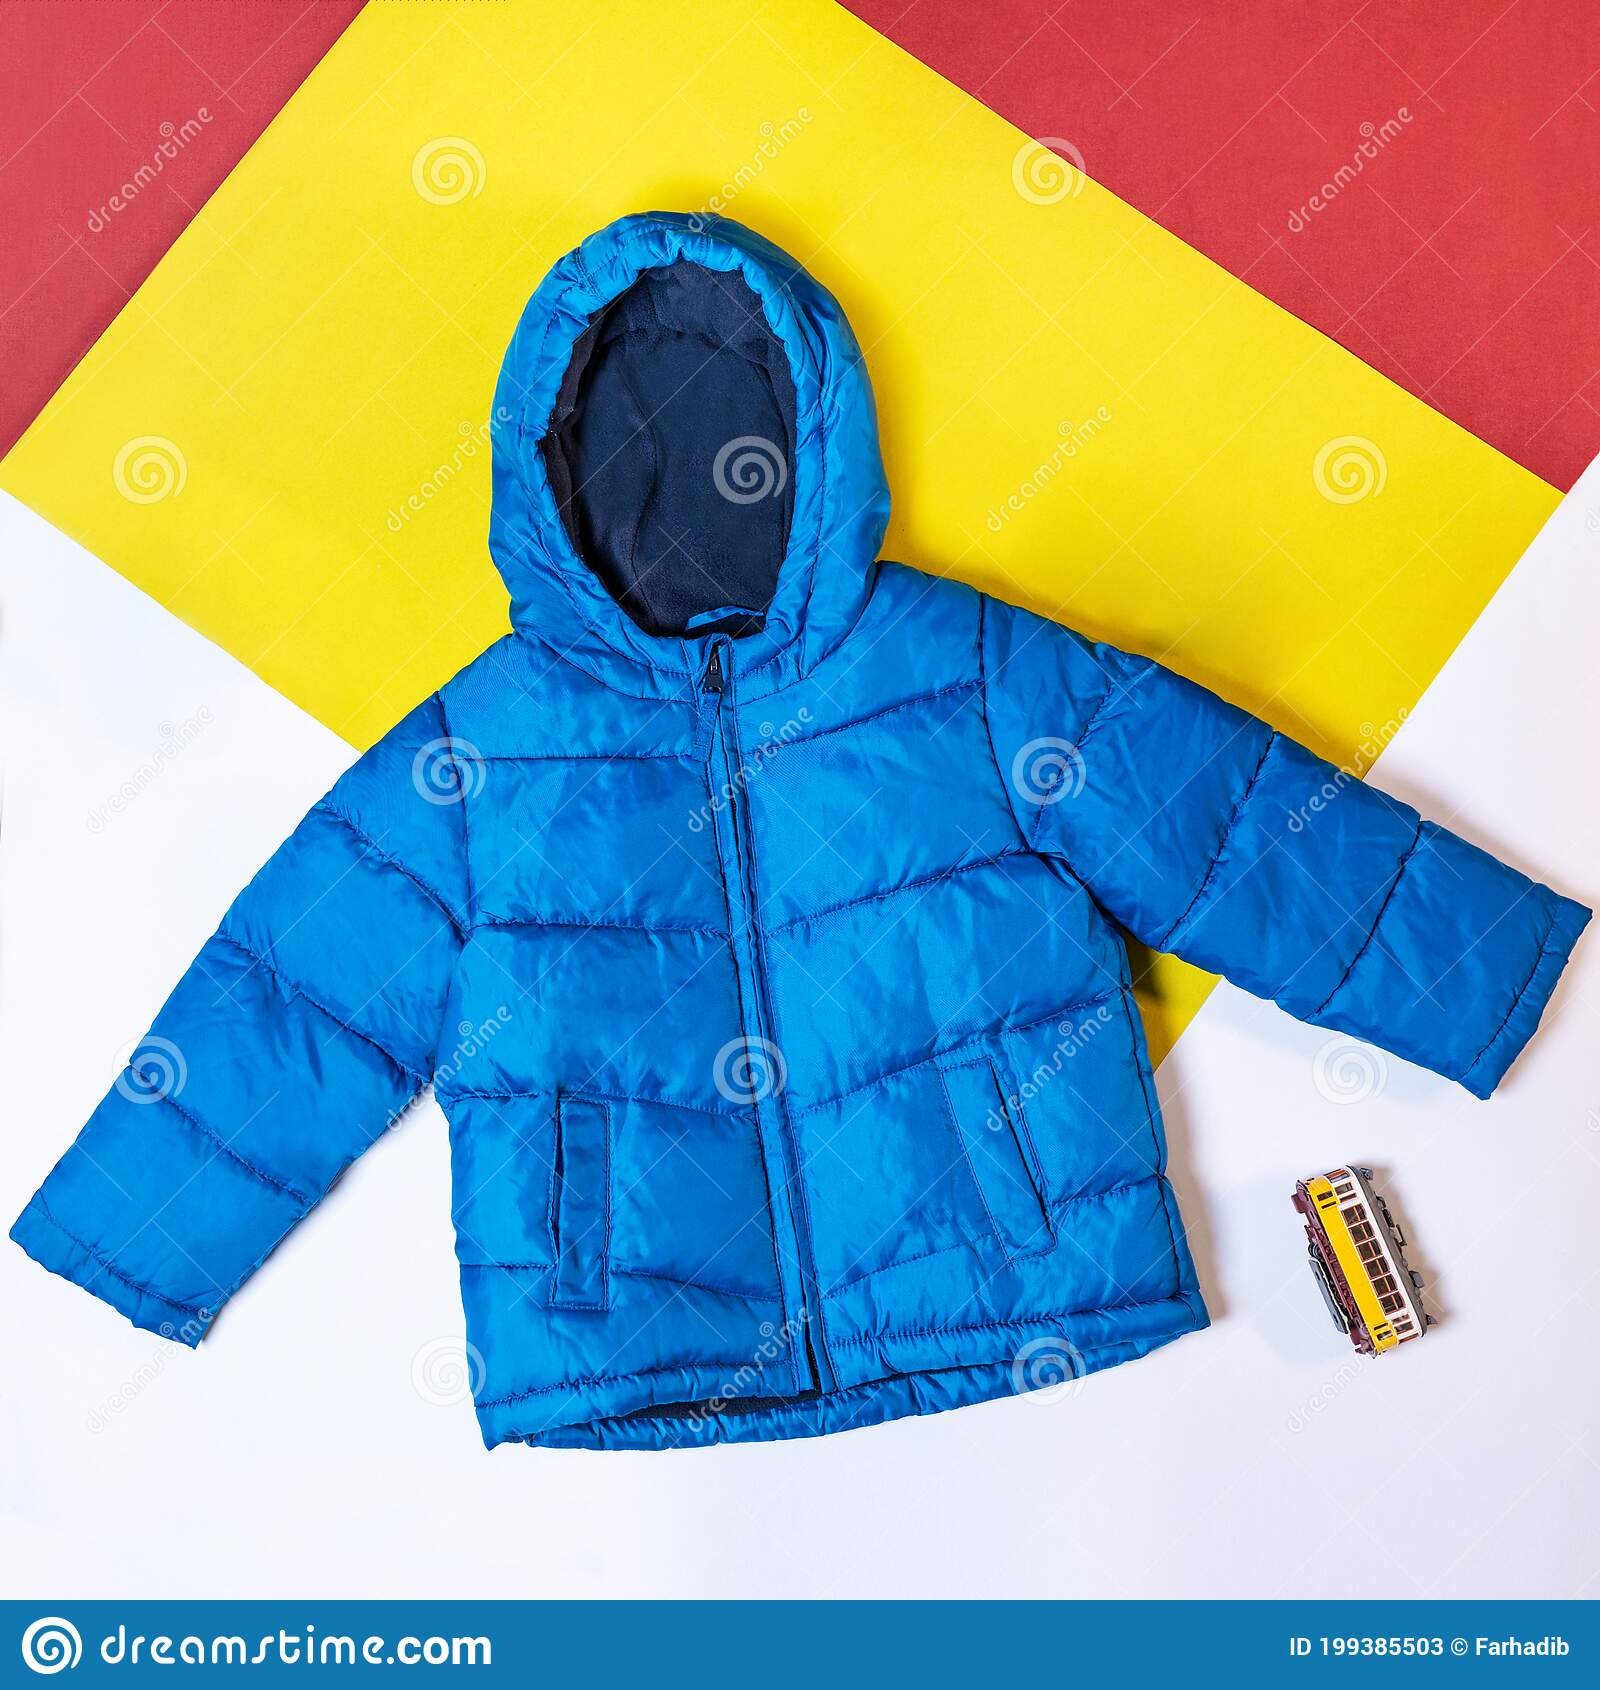 This is empty mockup so you can easily add your own design to it. Blue Hood Jacket Mock Up Isolated Top View Stock Image Image Of Apparel Jacket 199385503